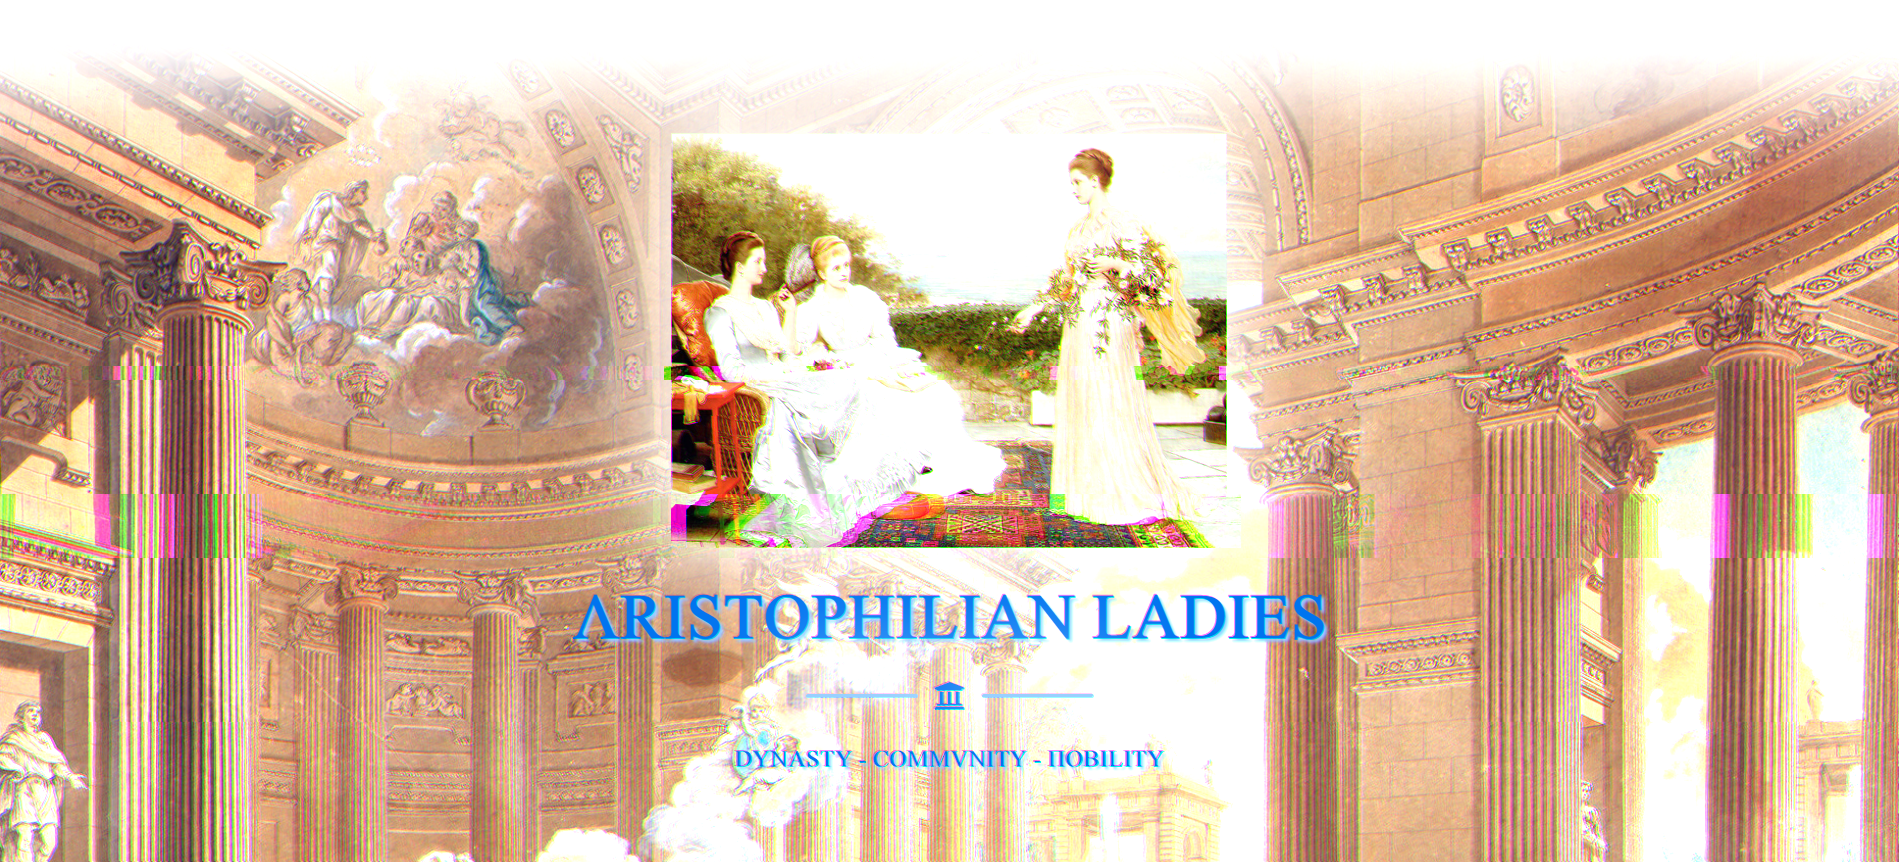 Aristophilian Ladies Society